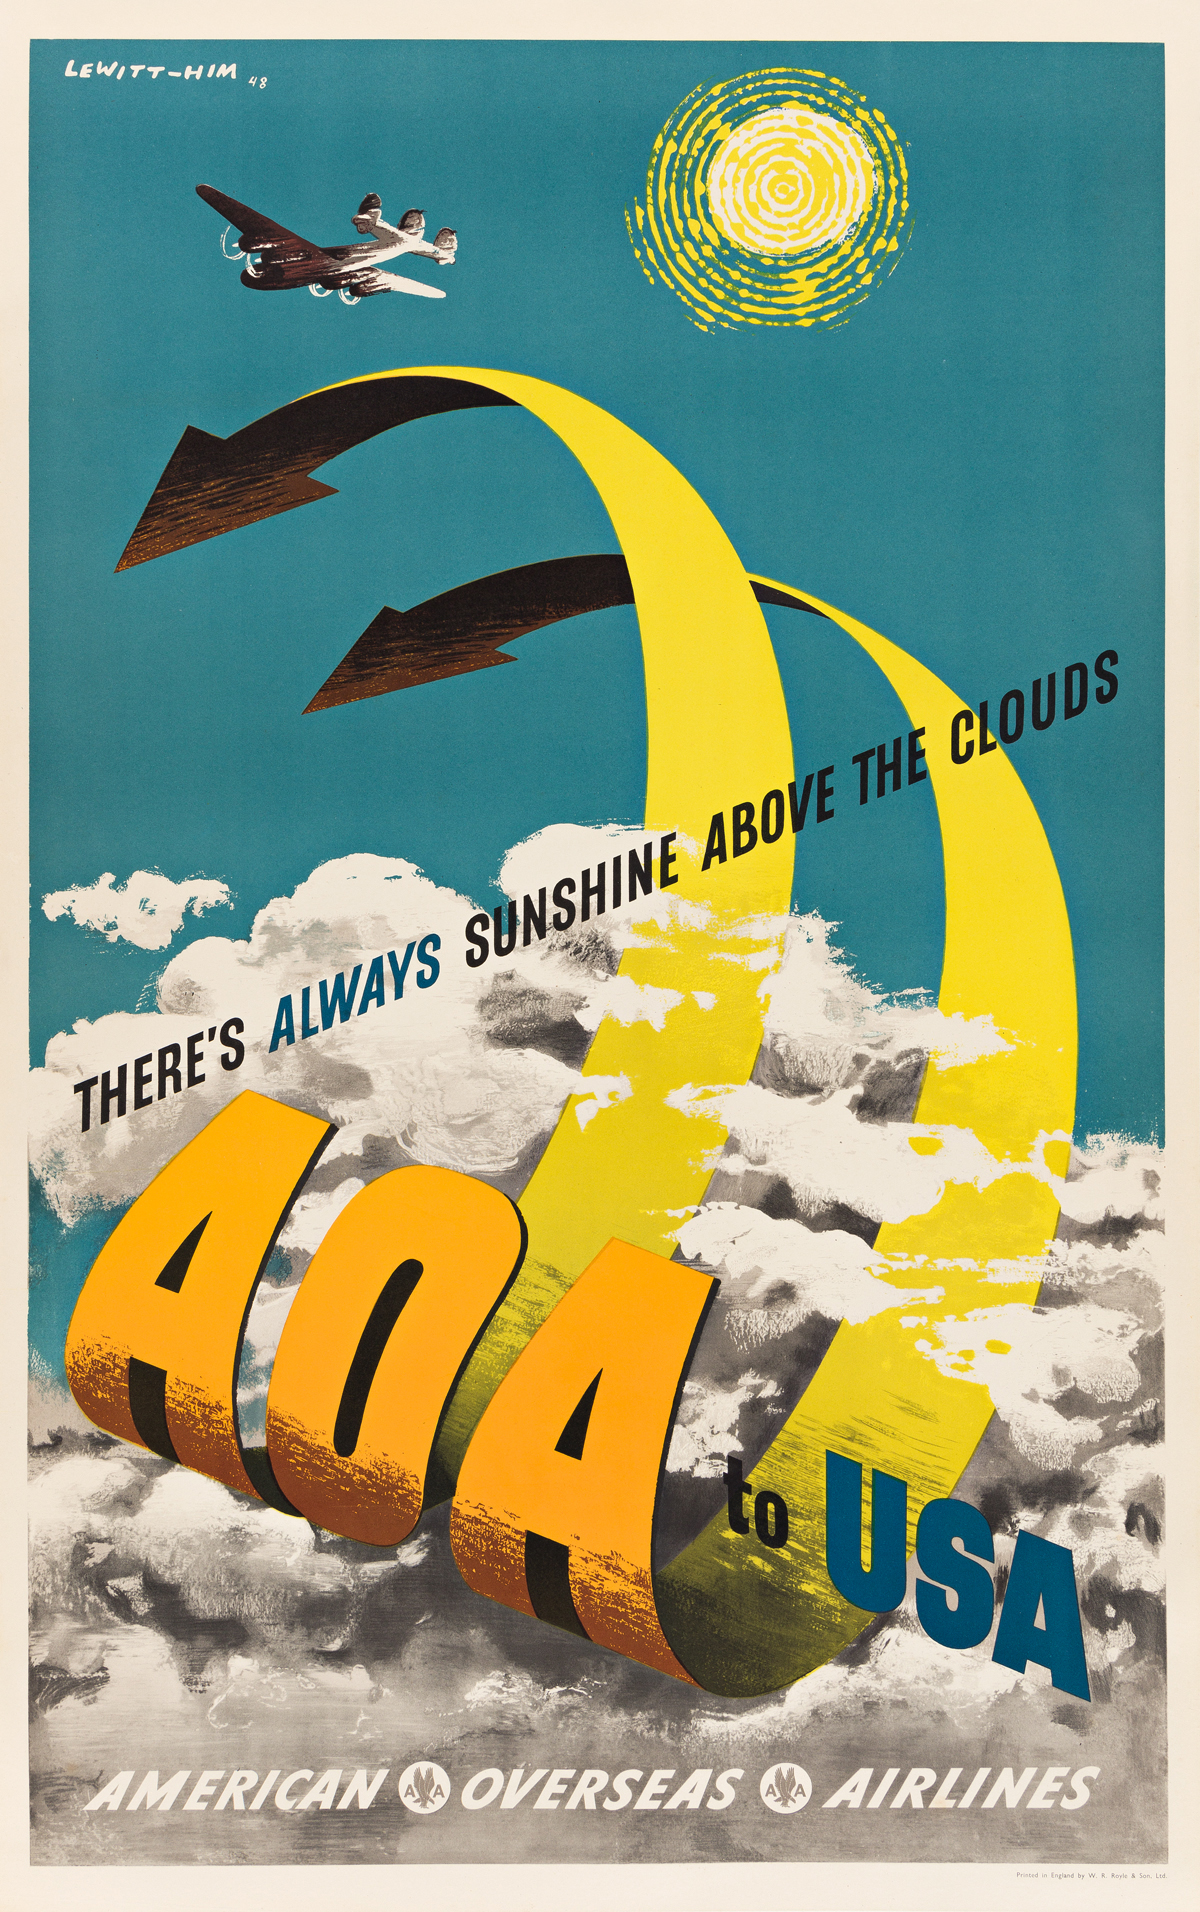 LEWITT-HIM (JAN LEWITT, 1907-1991 & JERZY HIM, 1900-1981).  AOA TO USA / AMERICAN OVERSEAS AIRLINES. 1948. 38x24 inches, 96½x63½ cm. W.